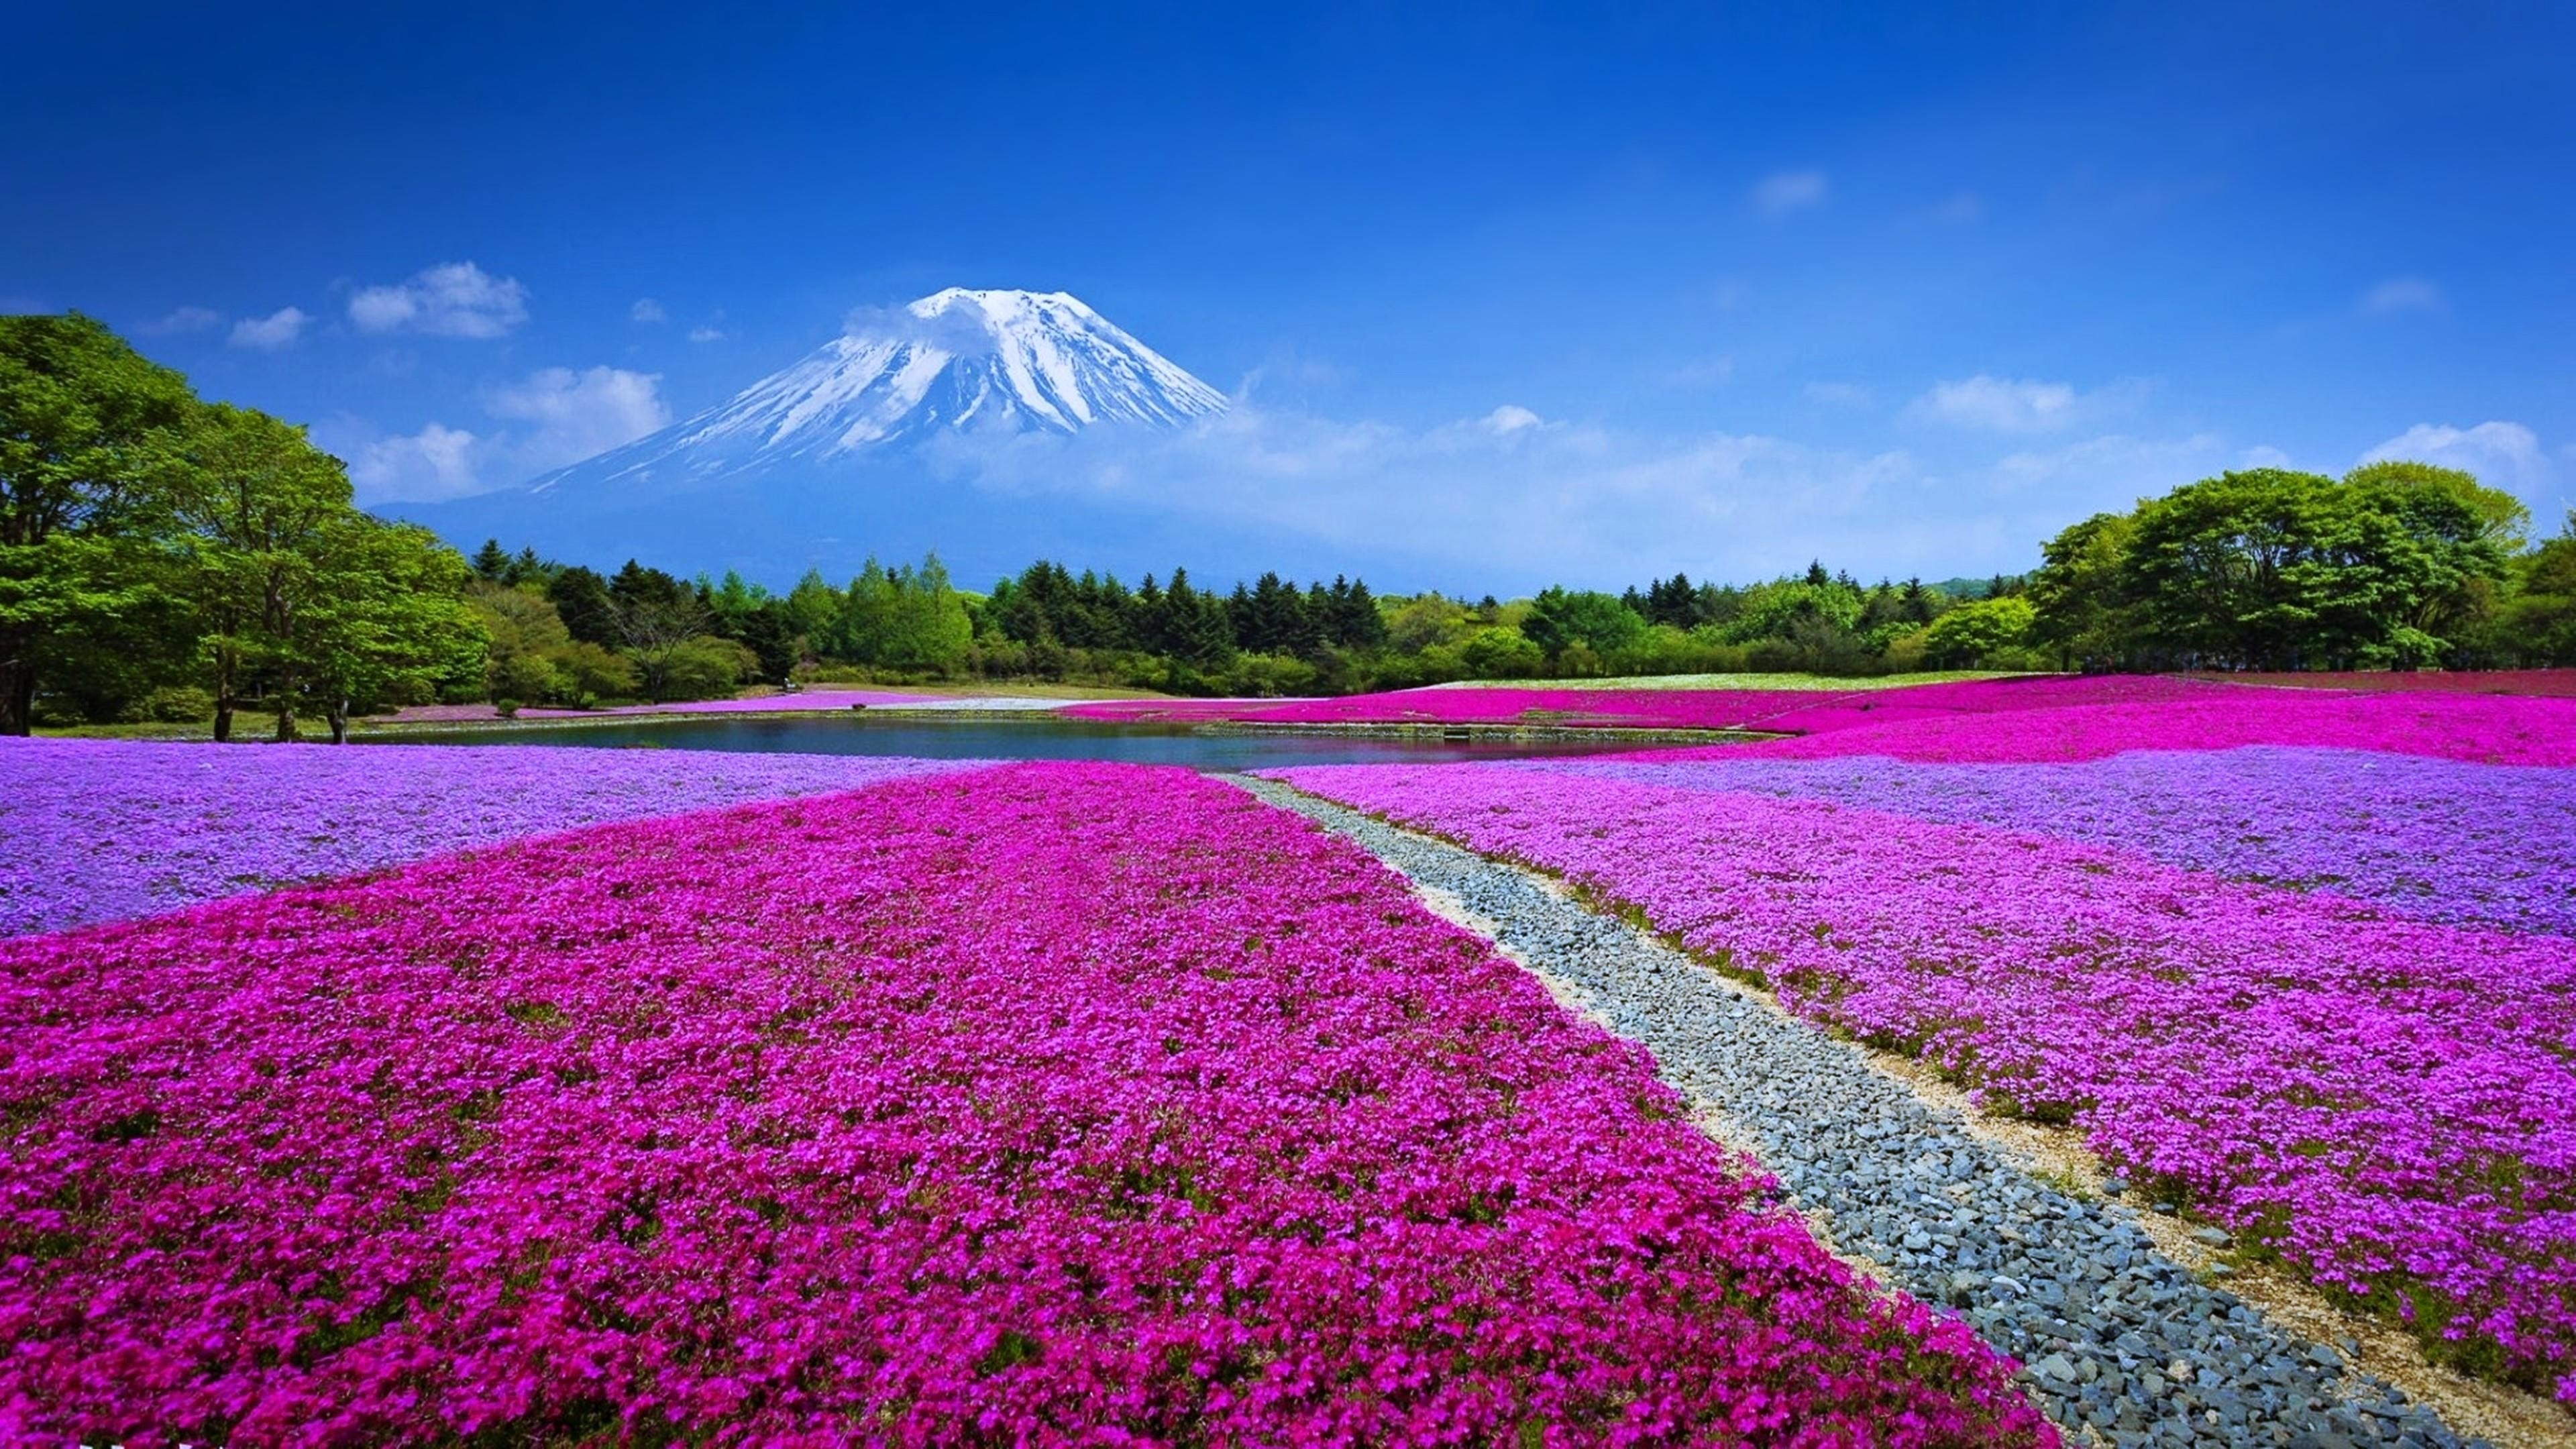 Res: 3840x2160, Mount Fuji Landscape, Japan Wallpaper | Wallpaper Studio 10 | Tens of  thousands HD and UltraHD wallpapers for Android, Windows and Xbox